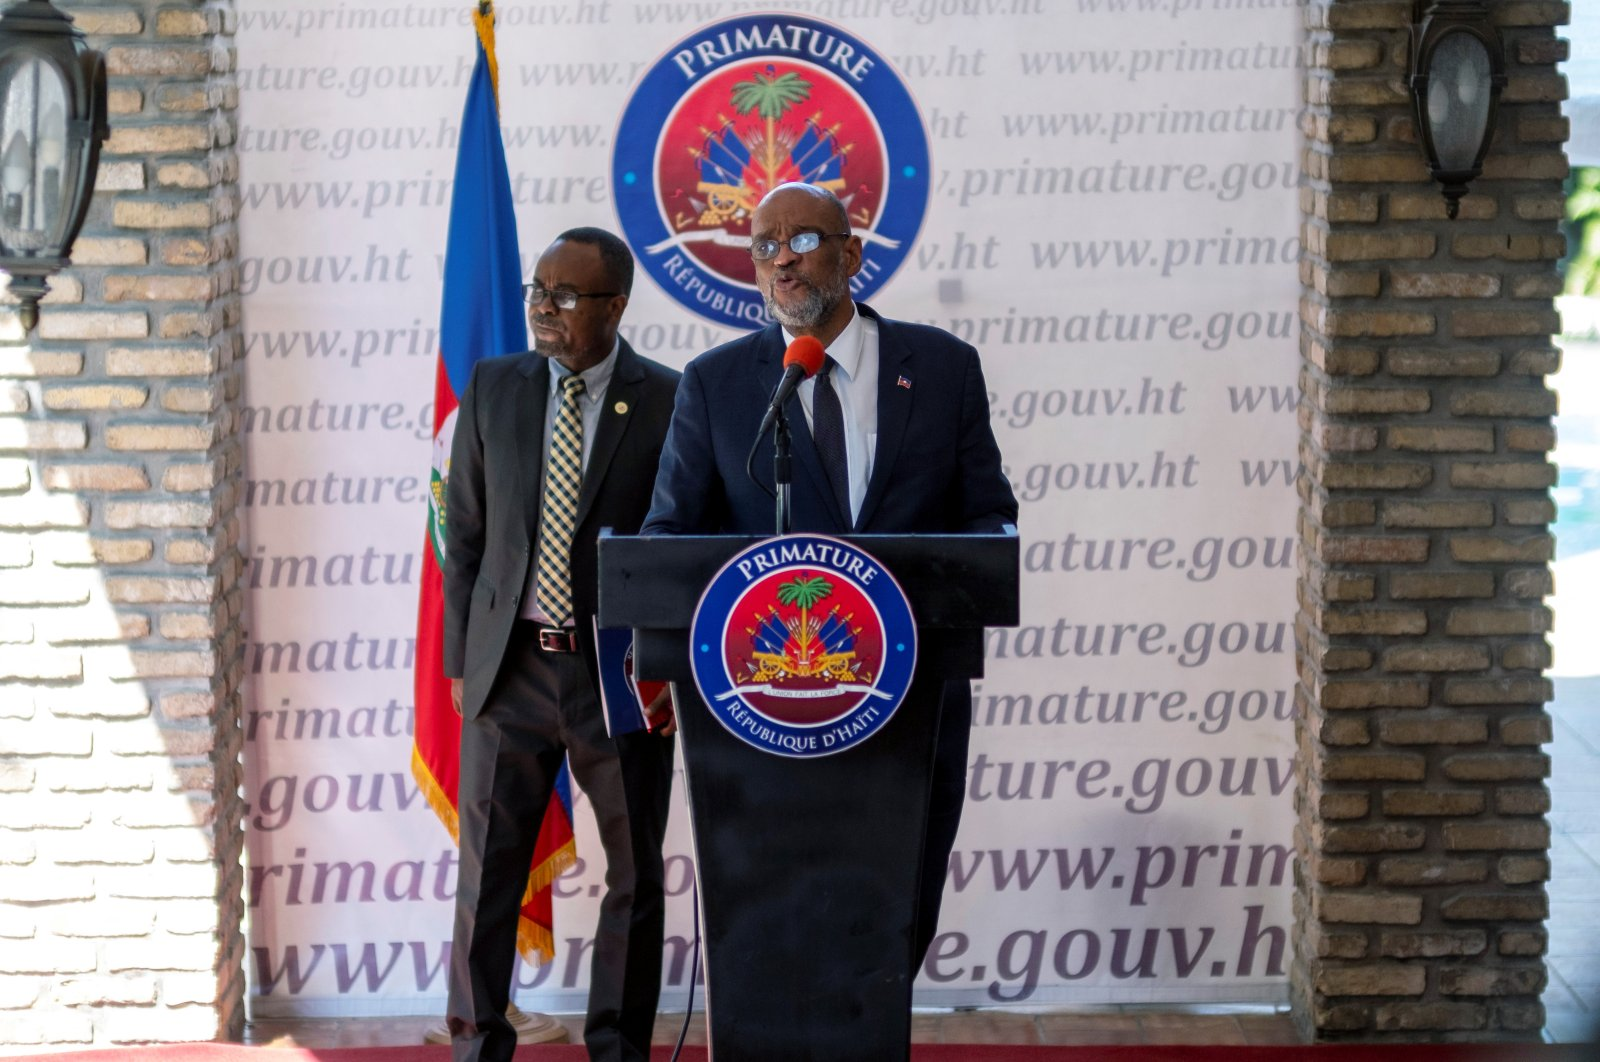 Haiti's Prime Minister Ariel Henry speaks during a news conference in Port-au-Prince, Haiti July 28, 2021. (Reuters Photo)